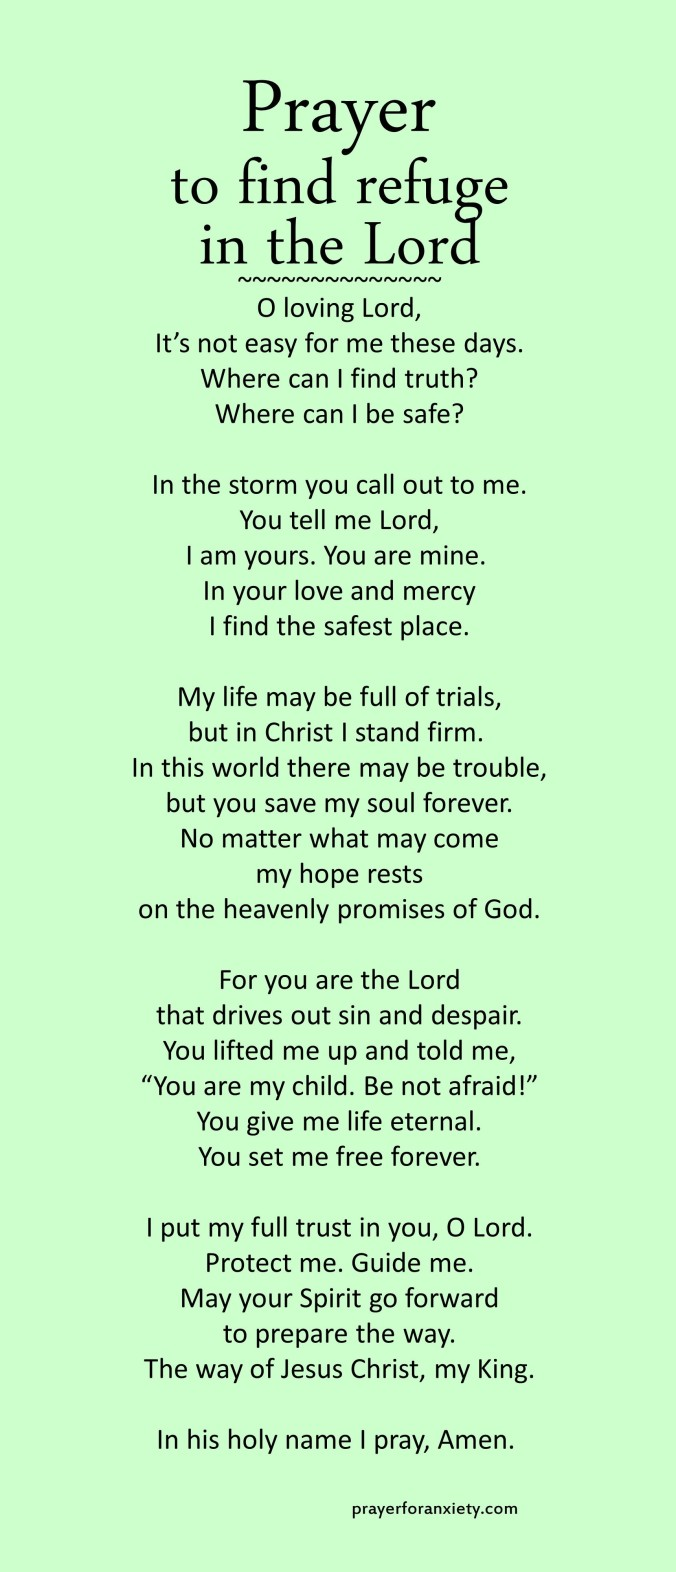 Prayer to find refuge in the Lord